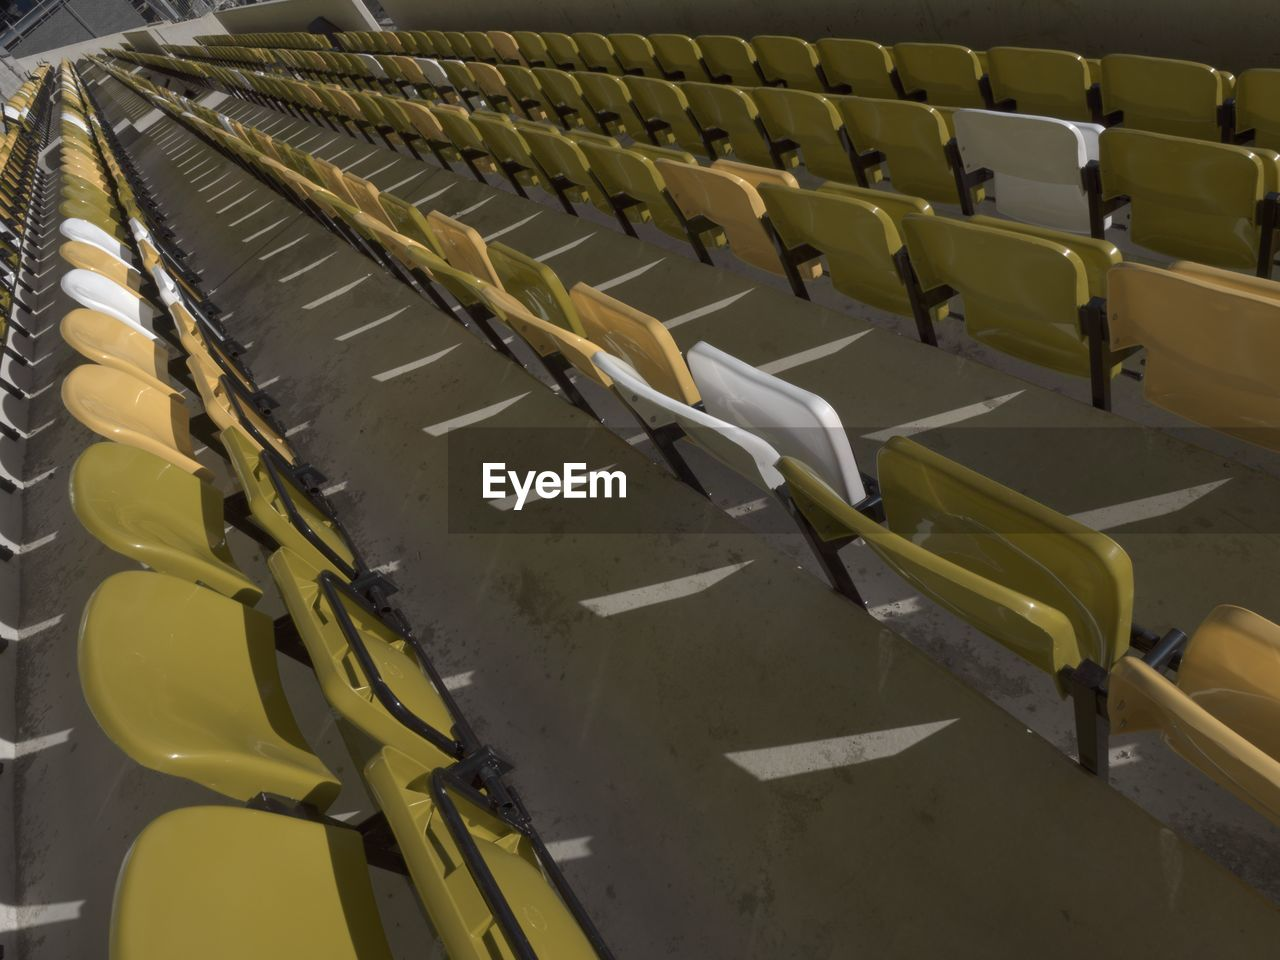 seat, chair, in a row, empty, absence, repetition, no people, stadium, side by side, high angle view, large group of objects, auditorium, arrangement, sport, order, indoors, bleachers, theater, yellow, day, foldable